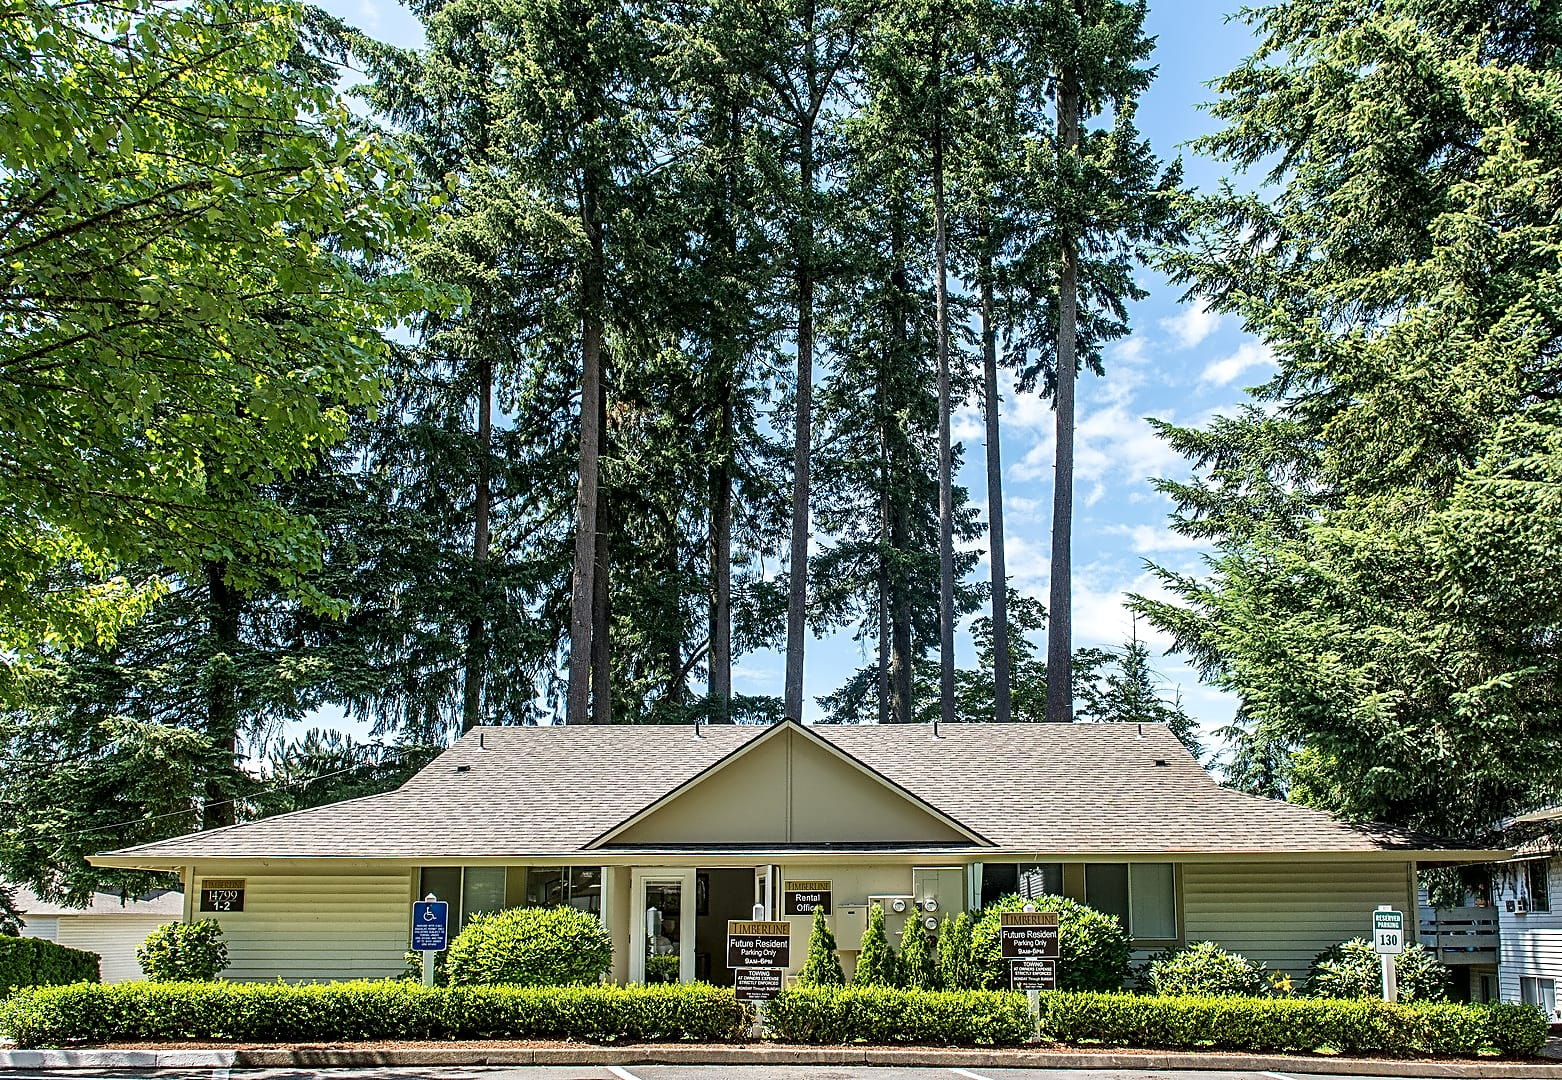 Apartments Near George Fox Timberline Apartments for George Fox University Students in Newberg, OR